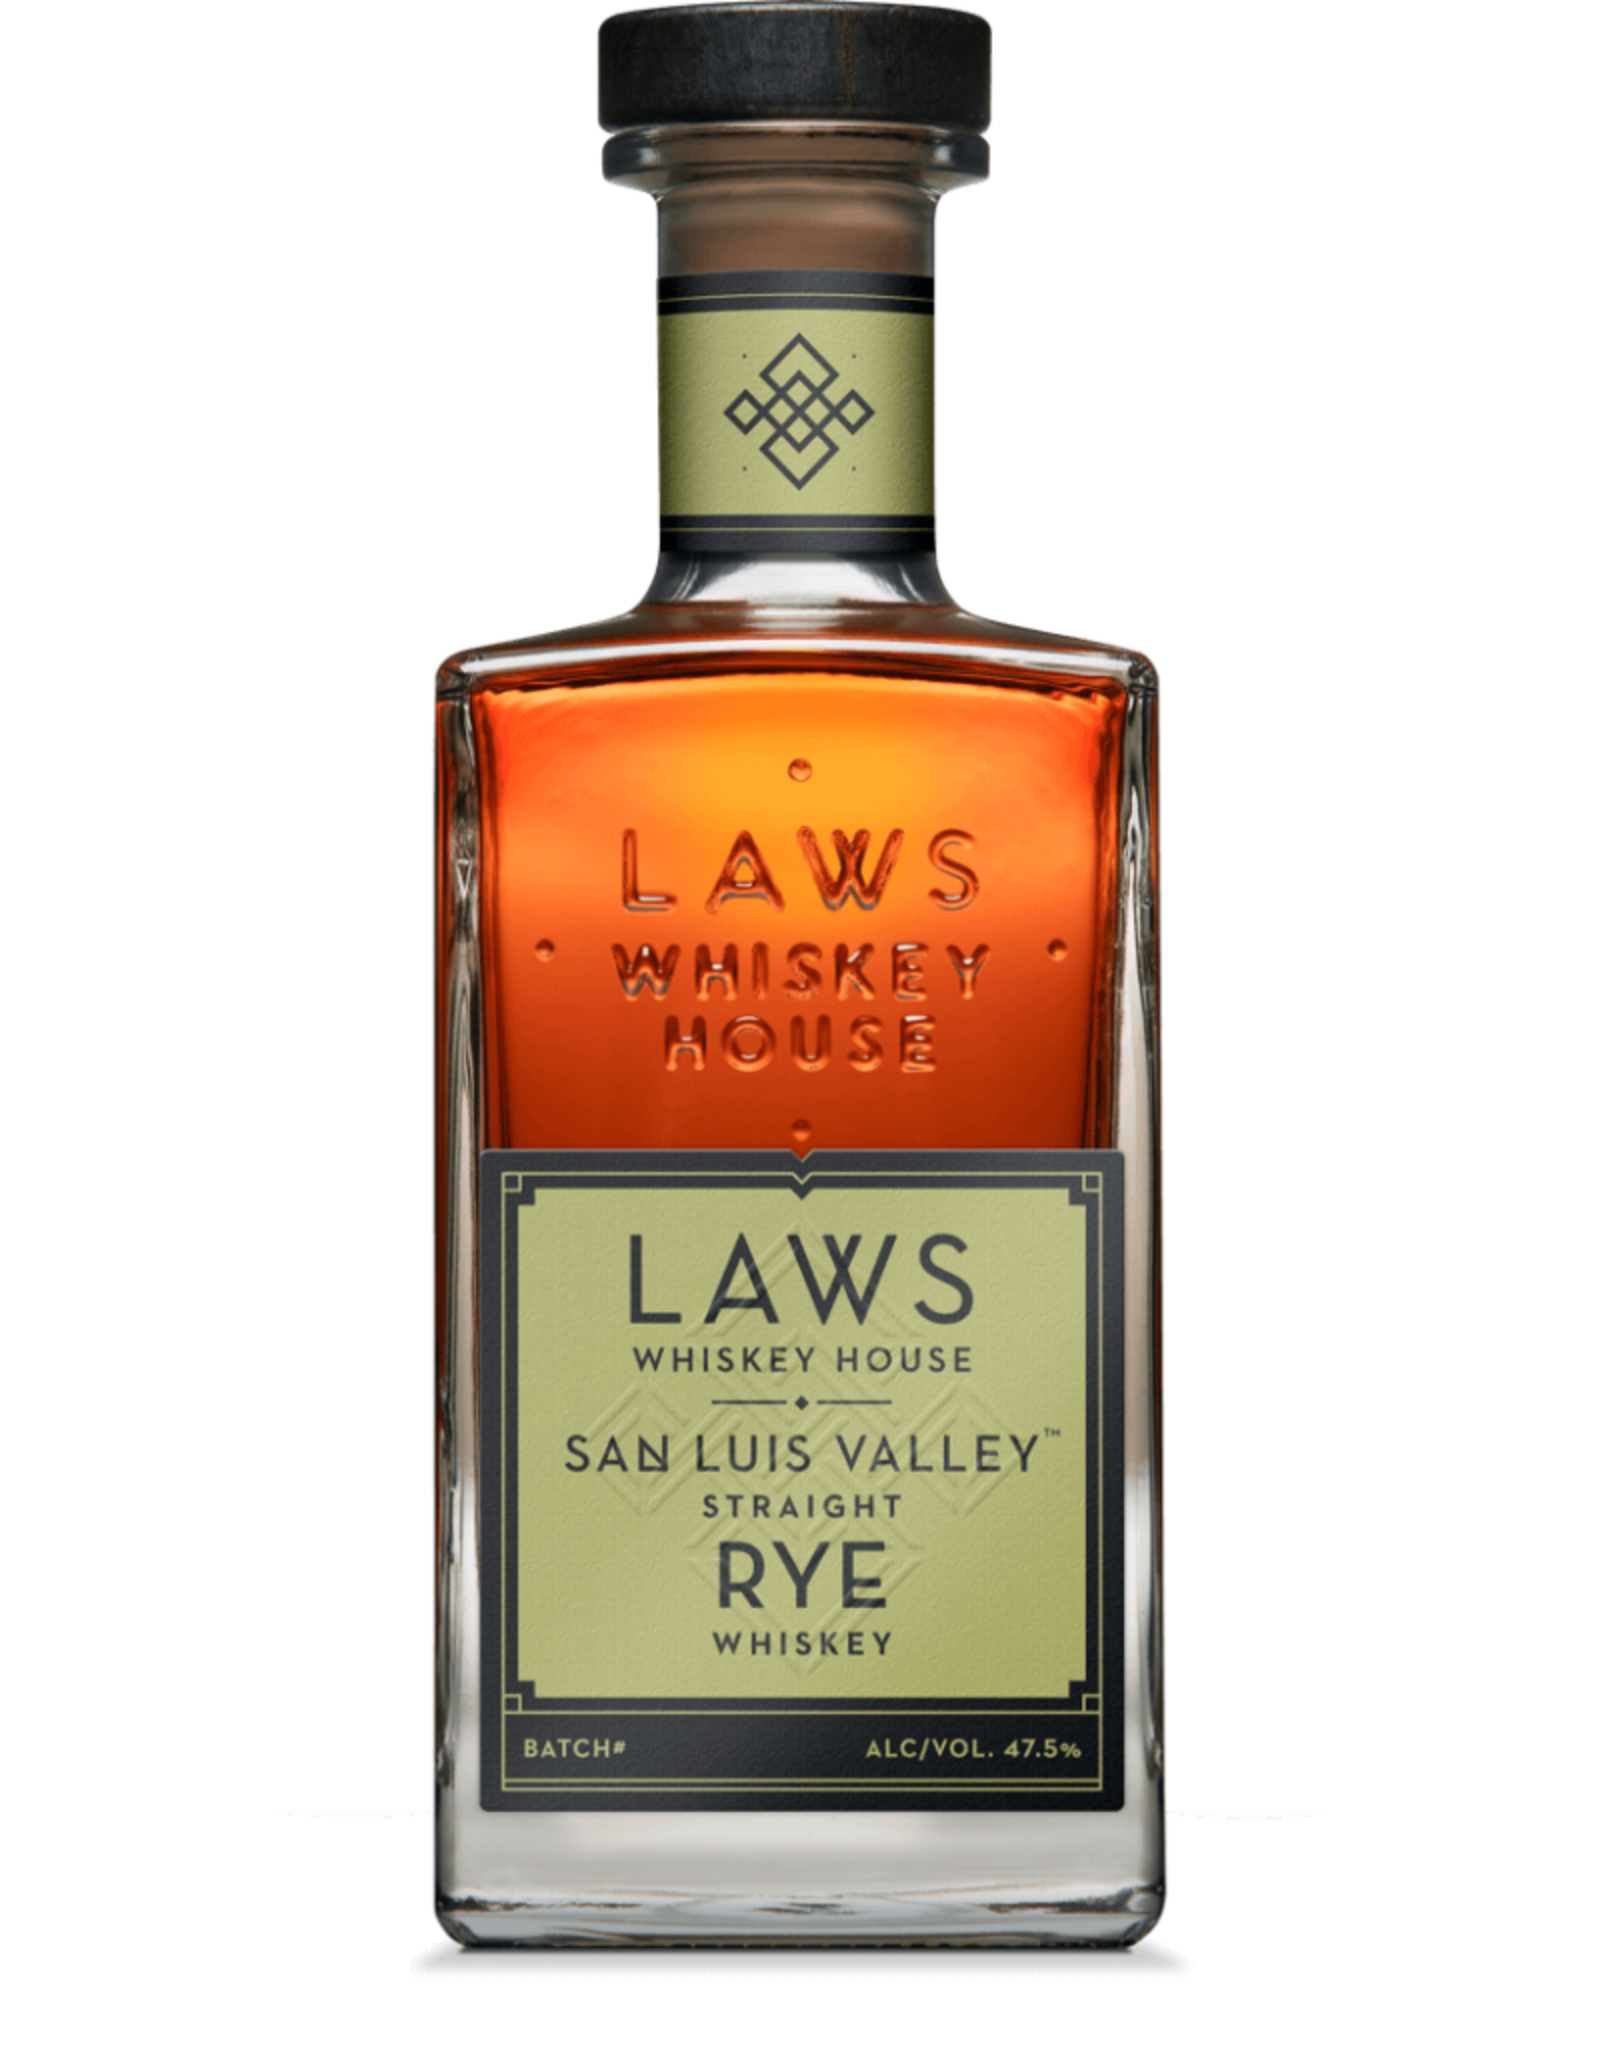 Laws Whiskey House San Luis Valley Straight Rye